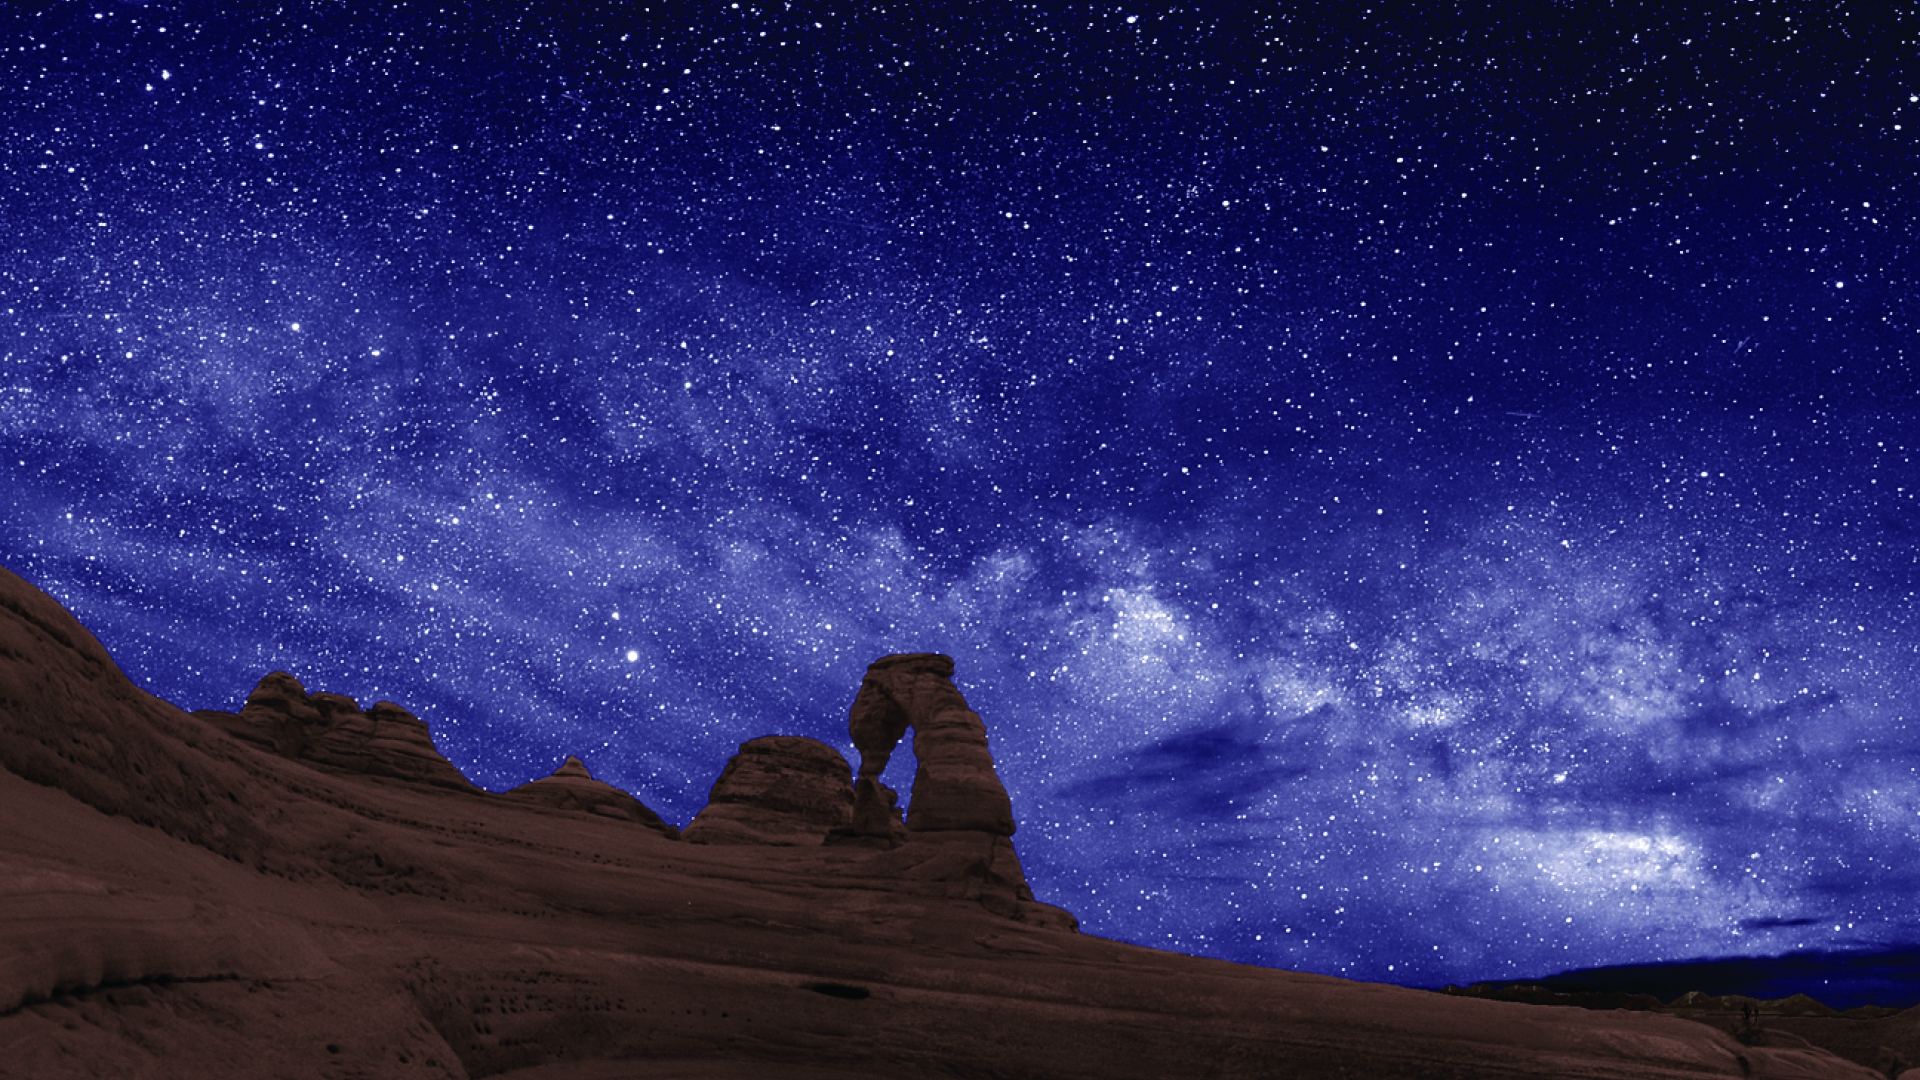 The white milky way in the purple-blue sky over Delicate Arch at Arches National Park